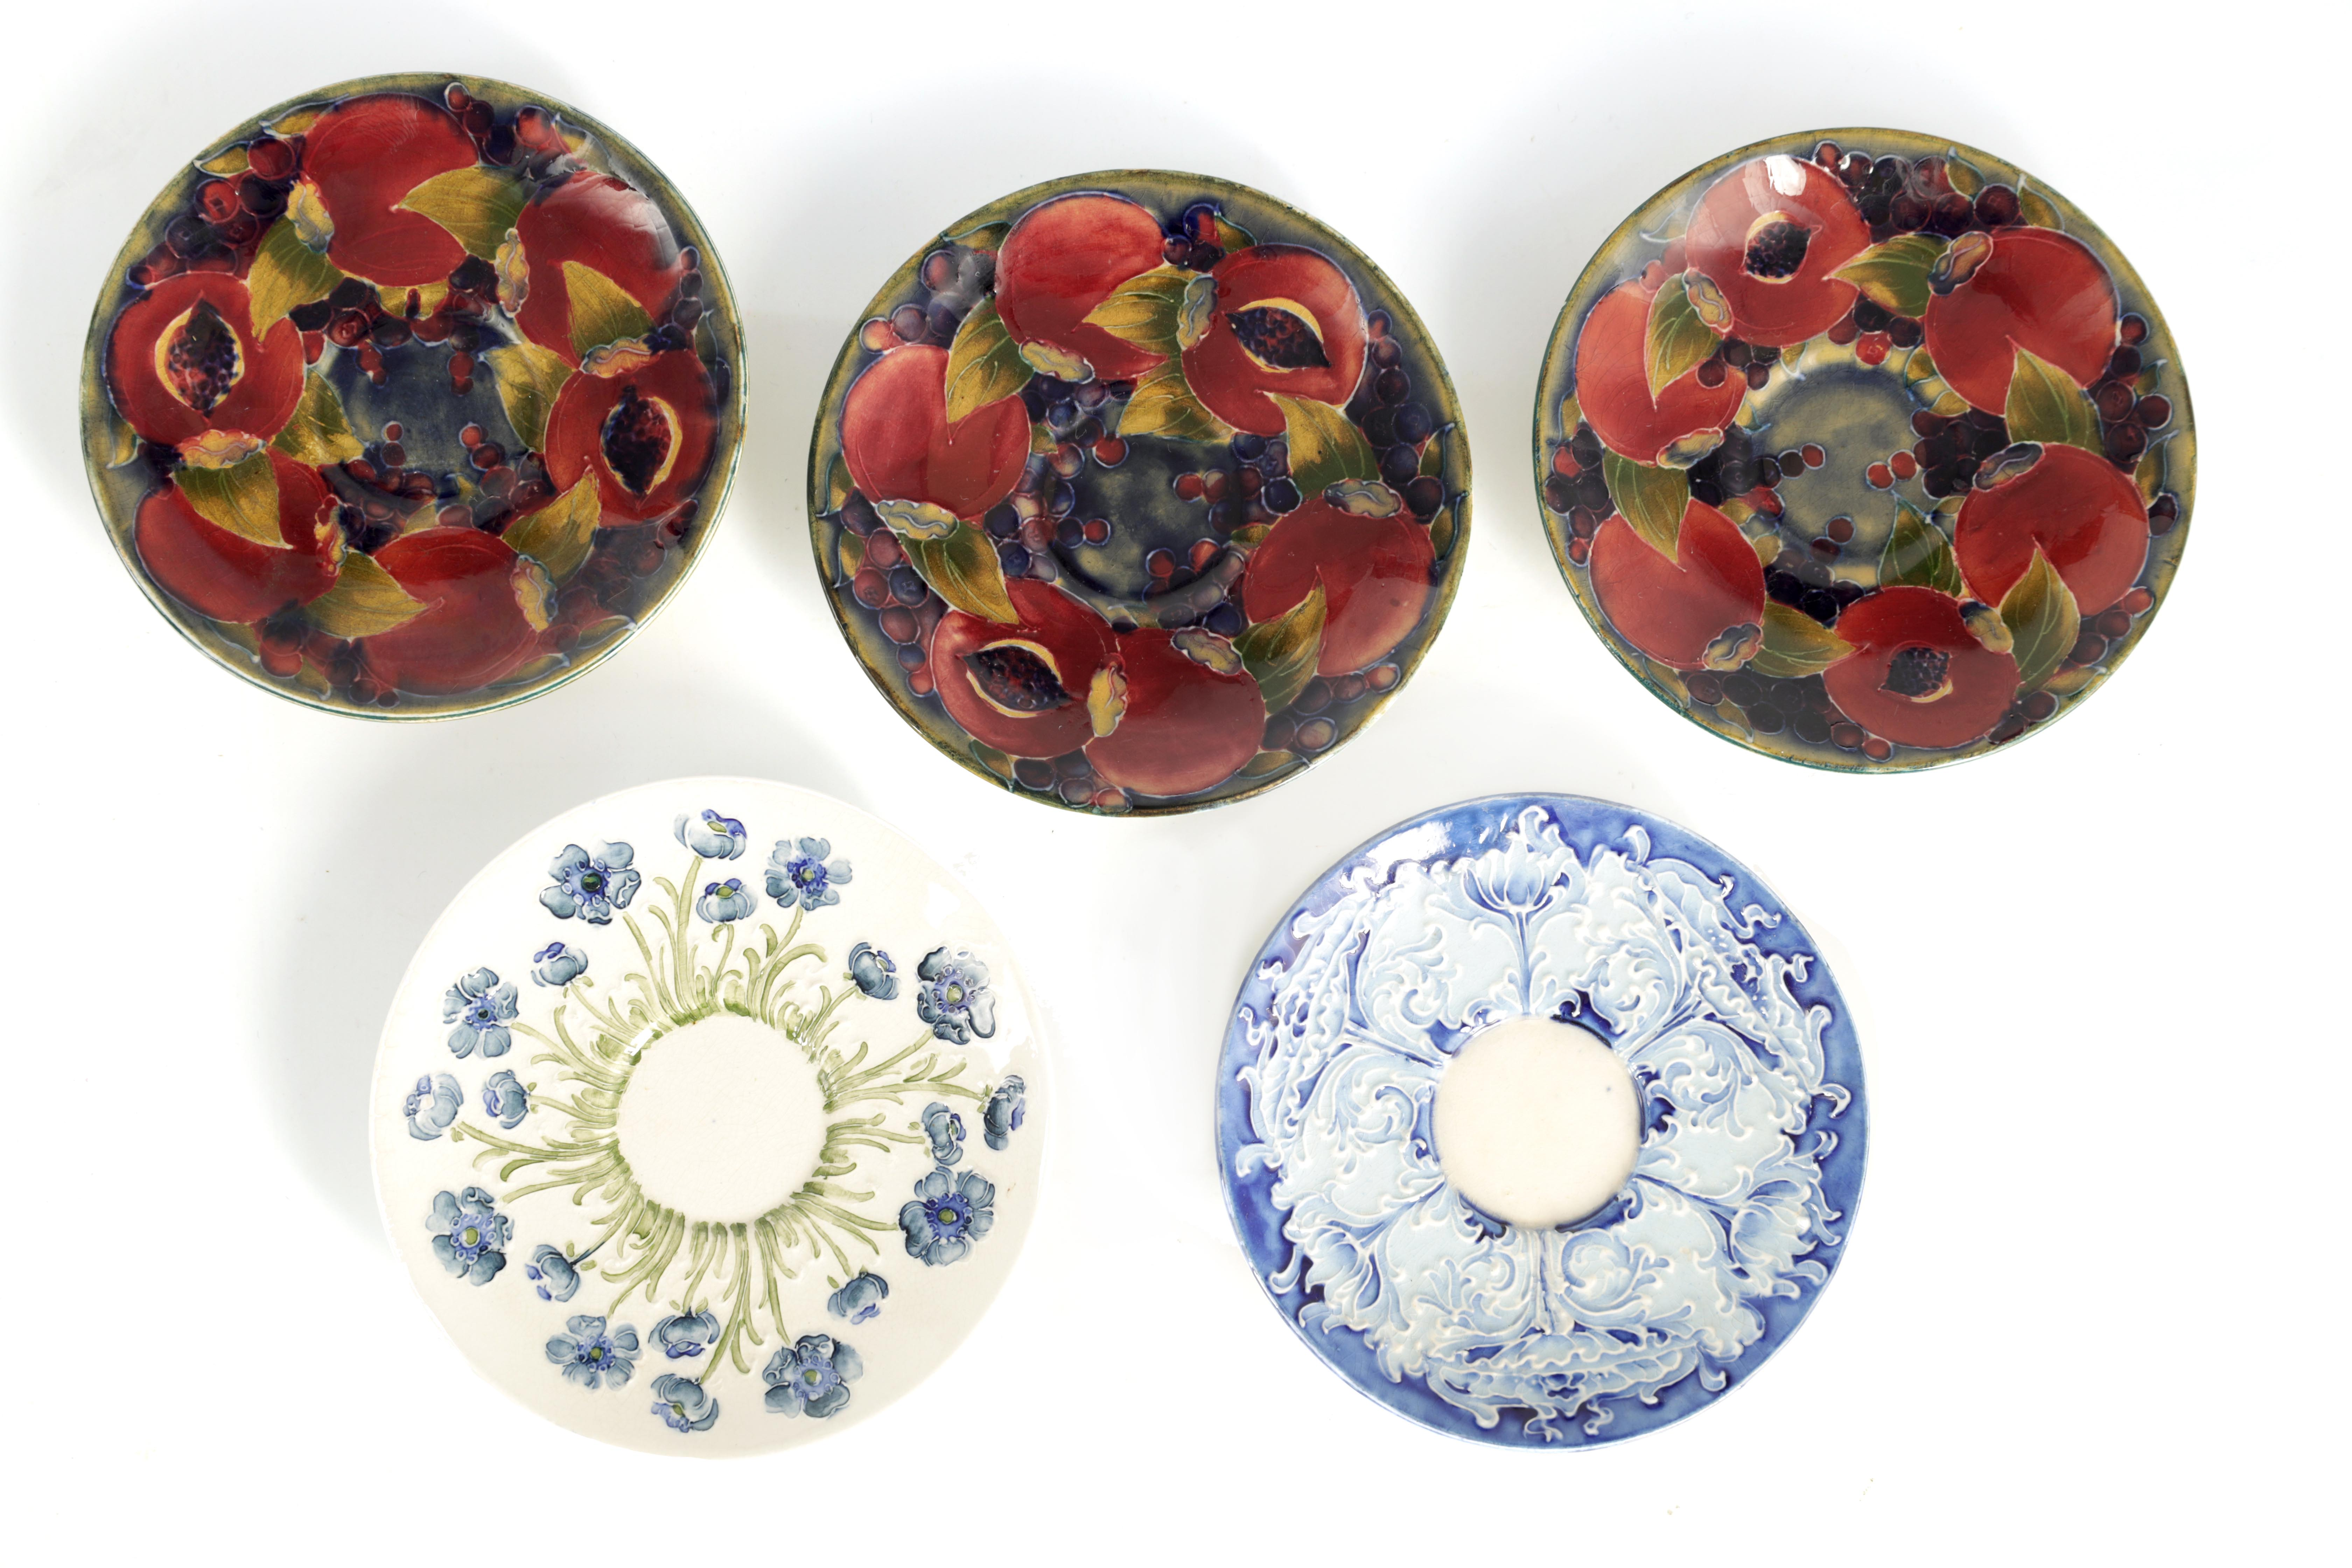 A COLLECTION OF FIVE MOORCROFT SAUCERS including three early monogrammed Pomegranate examples, a